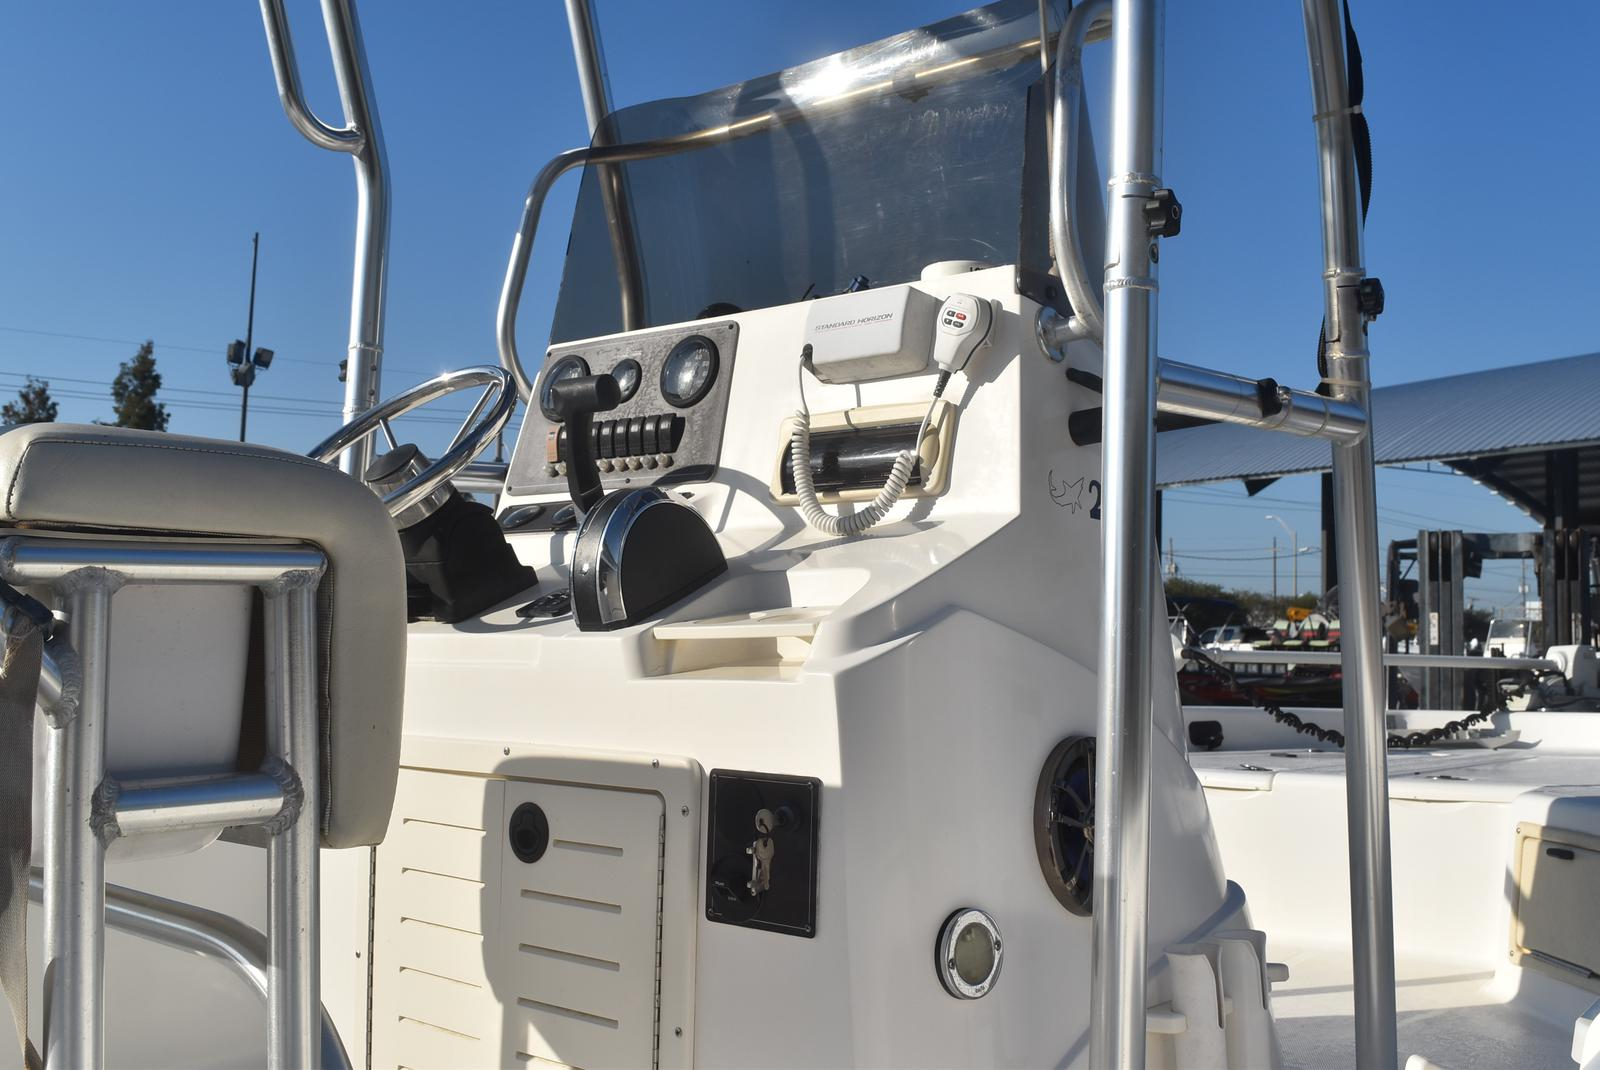 2000 Mako boat for sale, model of the boat is 2100 & Image # 8 of 9